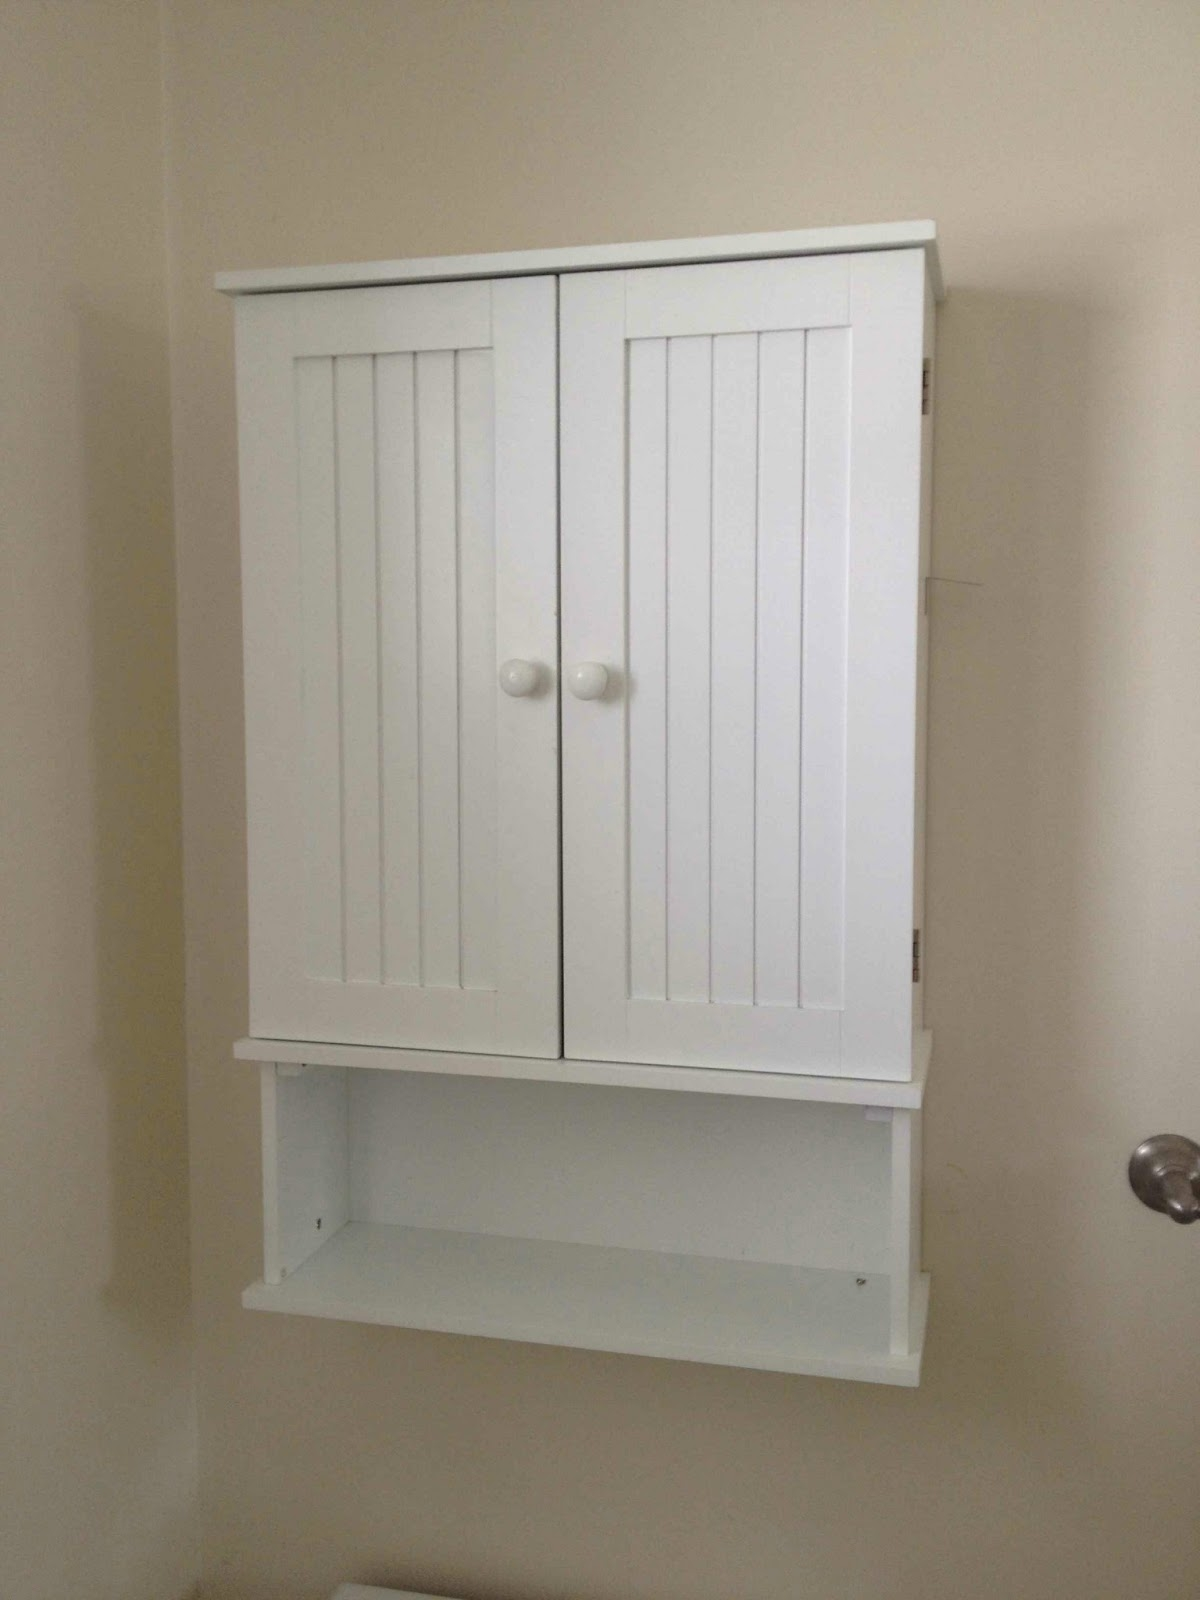 Wall Mount Bathroom Cabinet With Doors